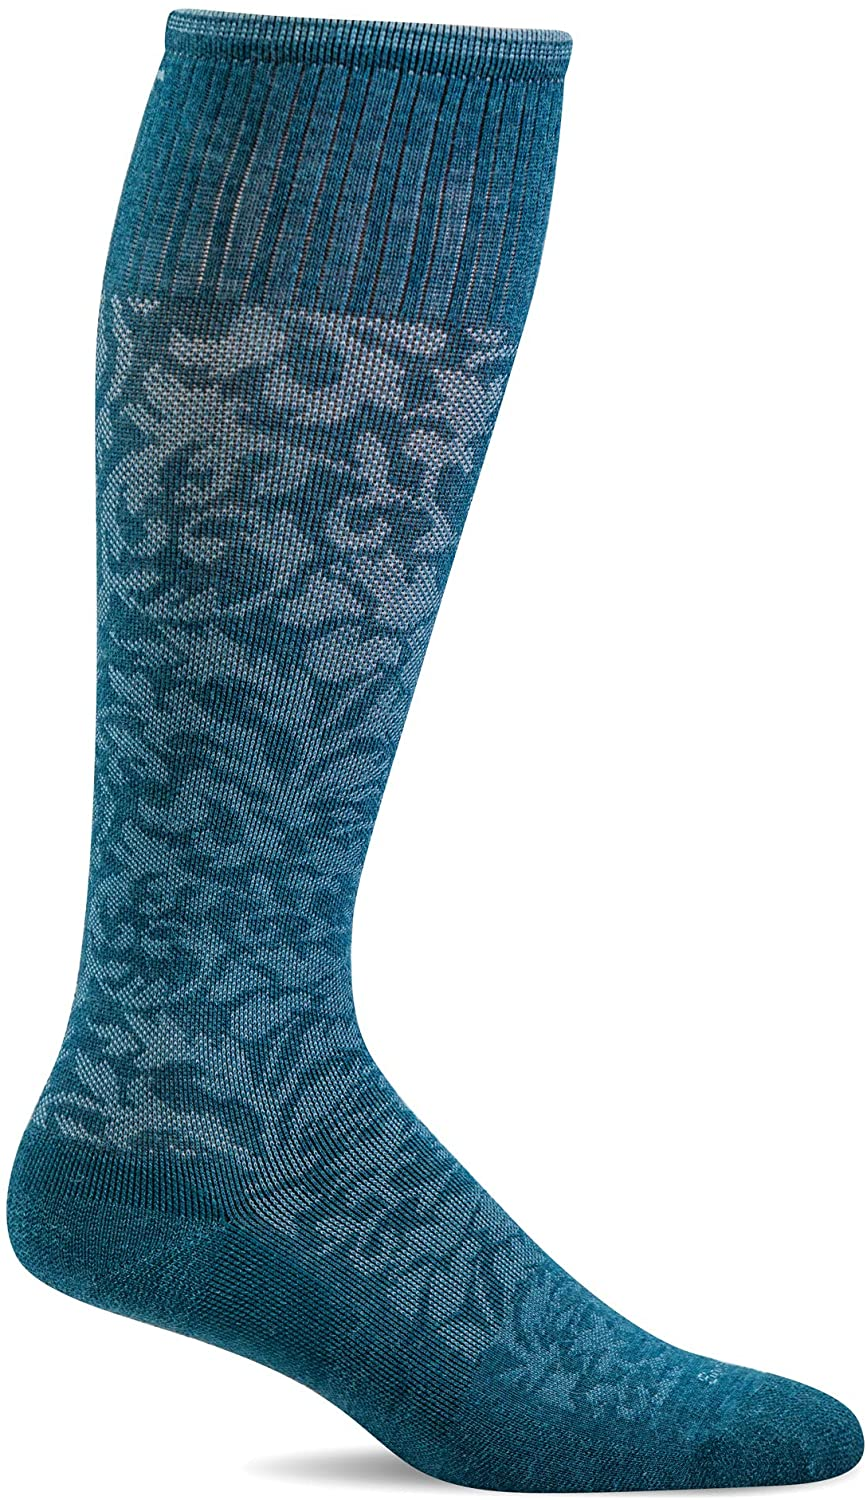 Sockwell Women's Damask Moderate Graduated Compression Sock in Teal Blue from the side